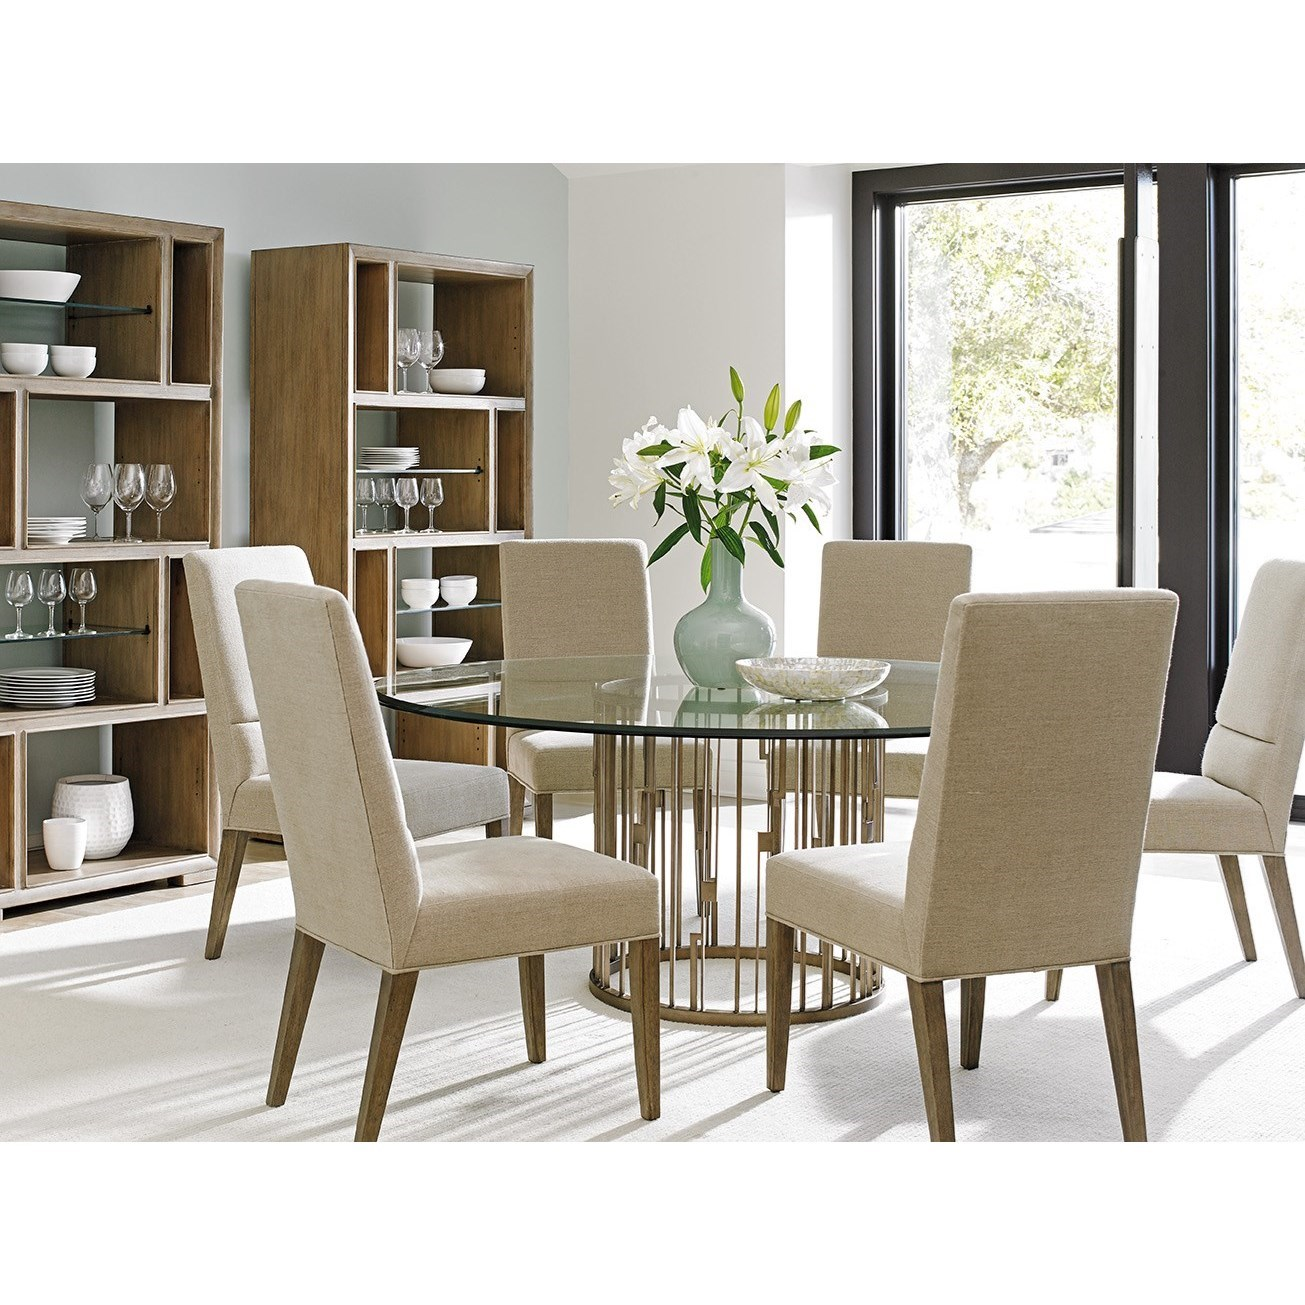 Lexington Dining Room Furniture: Lexington Shadow Play Seven Piece Dining Set With Glass